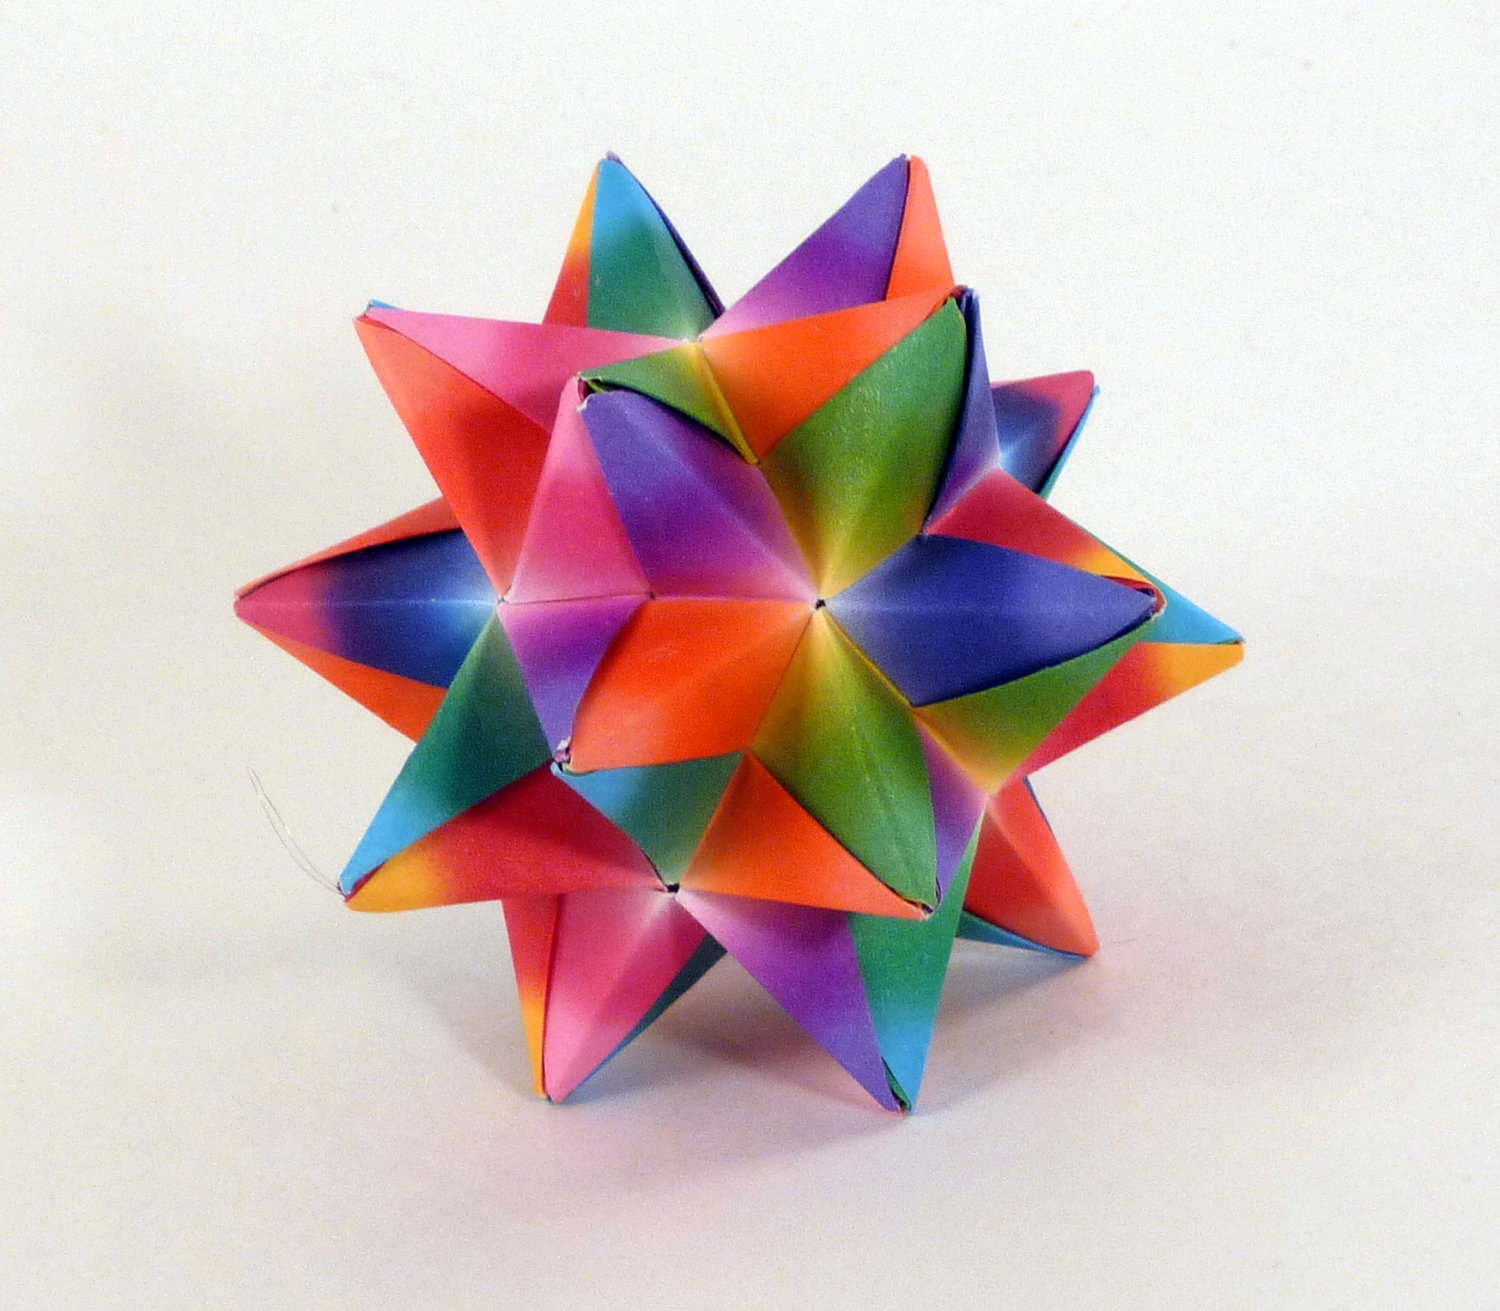 Folding 5 Pointed Origami Star Christmas Ornaments | 1311x1500